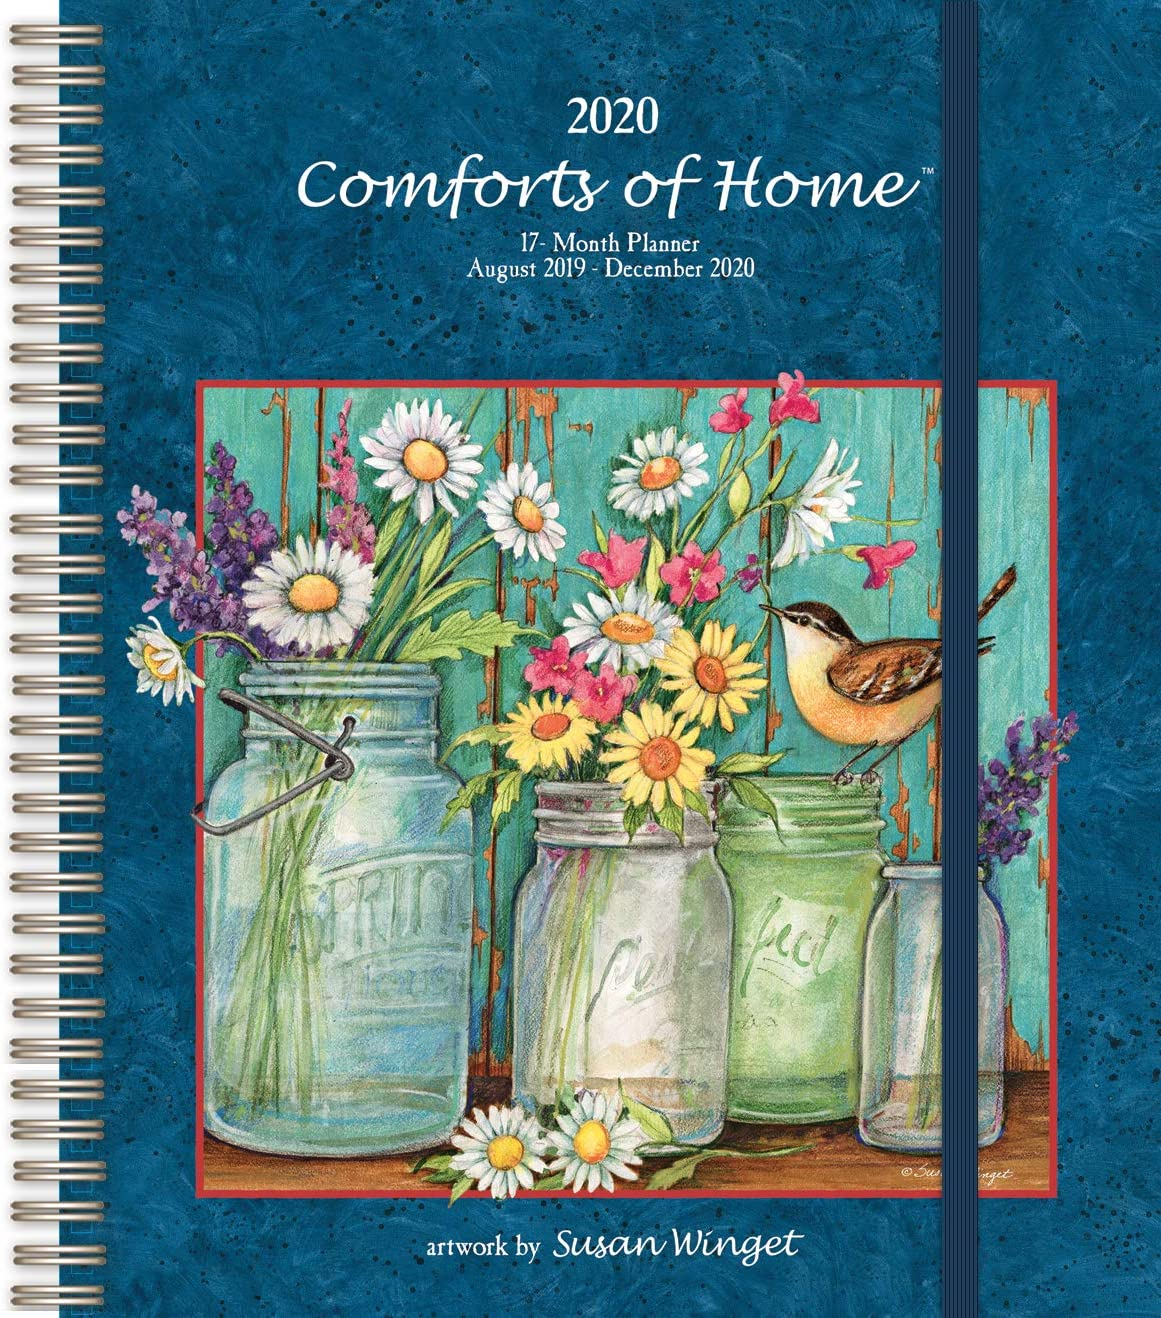 Wells Street by LANG WSBL Comforts of Home 2020 Deluxe Planner (20997061046) Personal Organizer (20997061046)